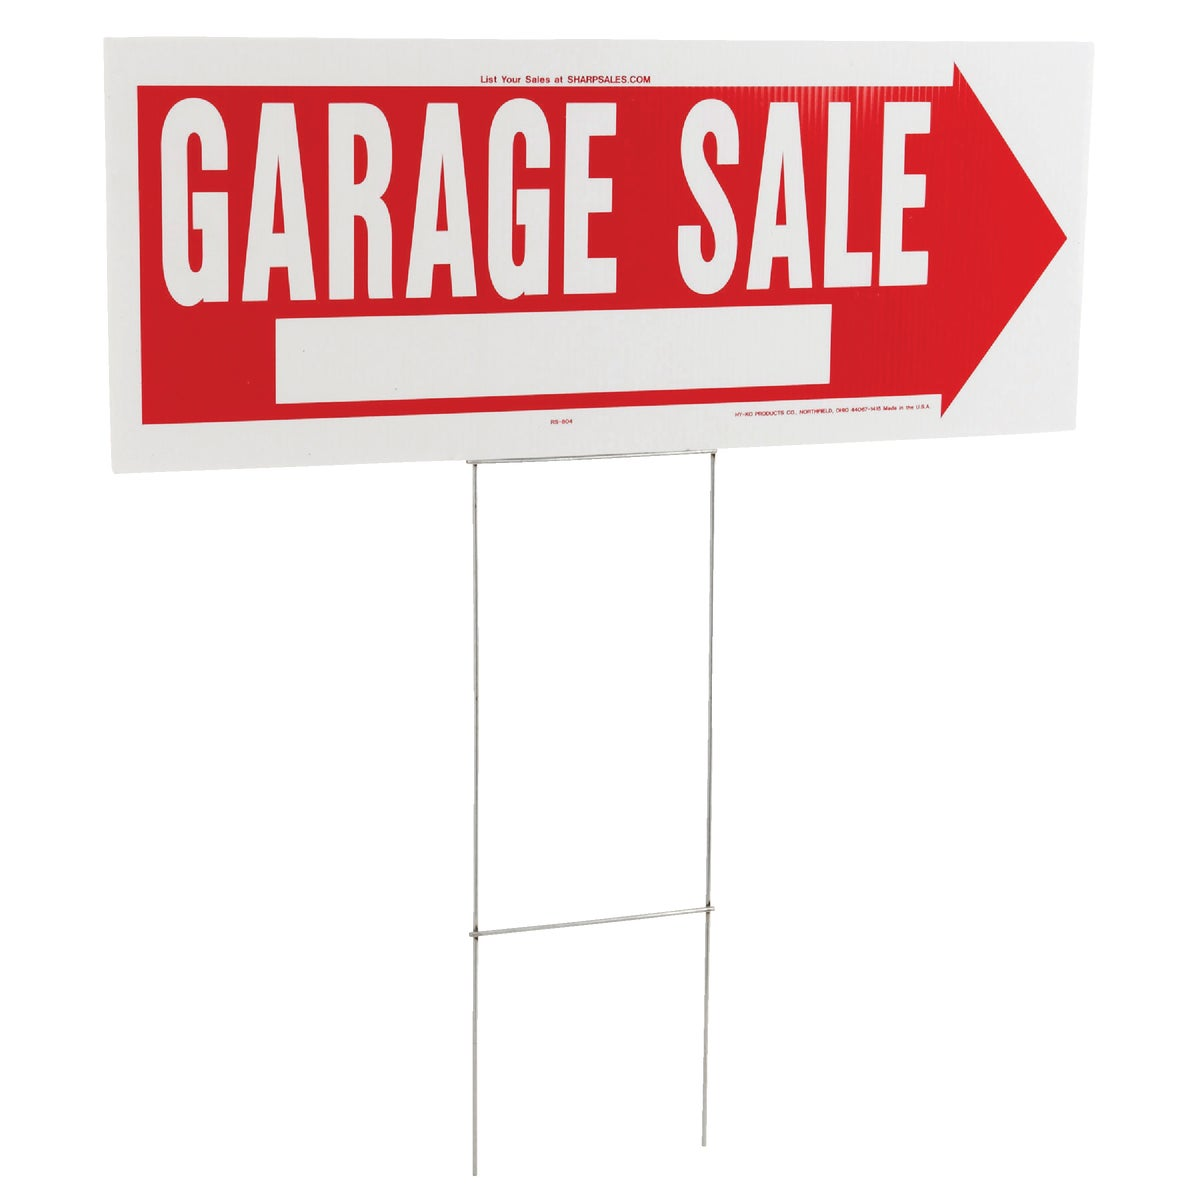 10X24 GARAGE SALE SIGN - RS-804 by Hy Ko Prods Co